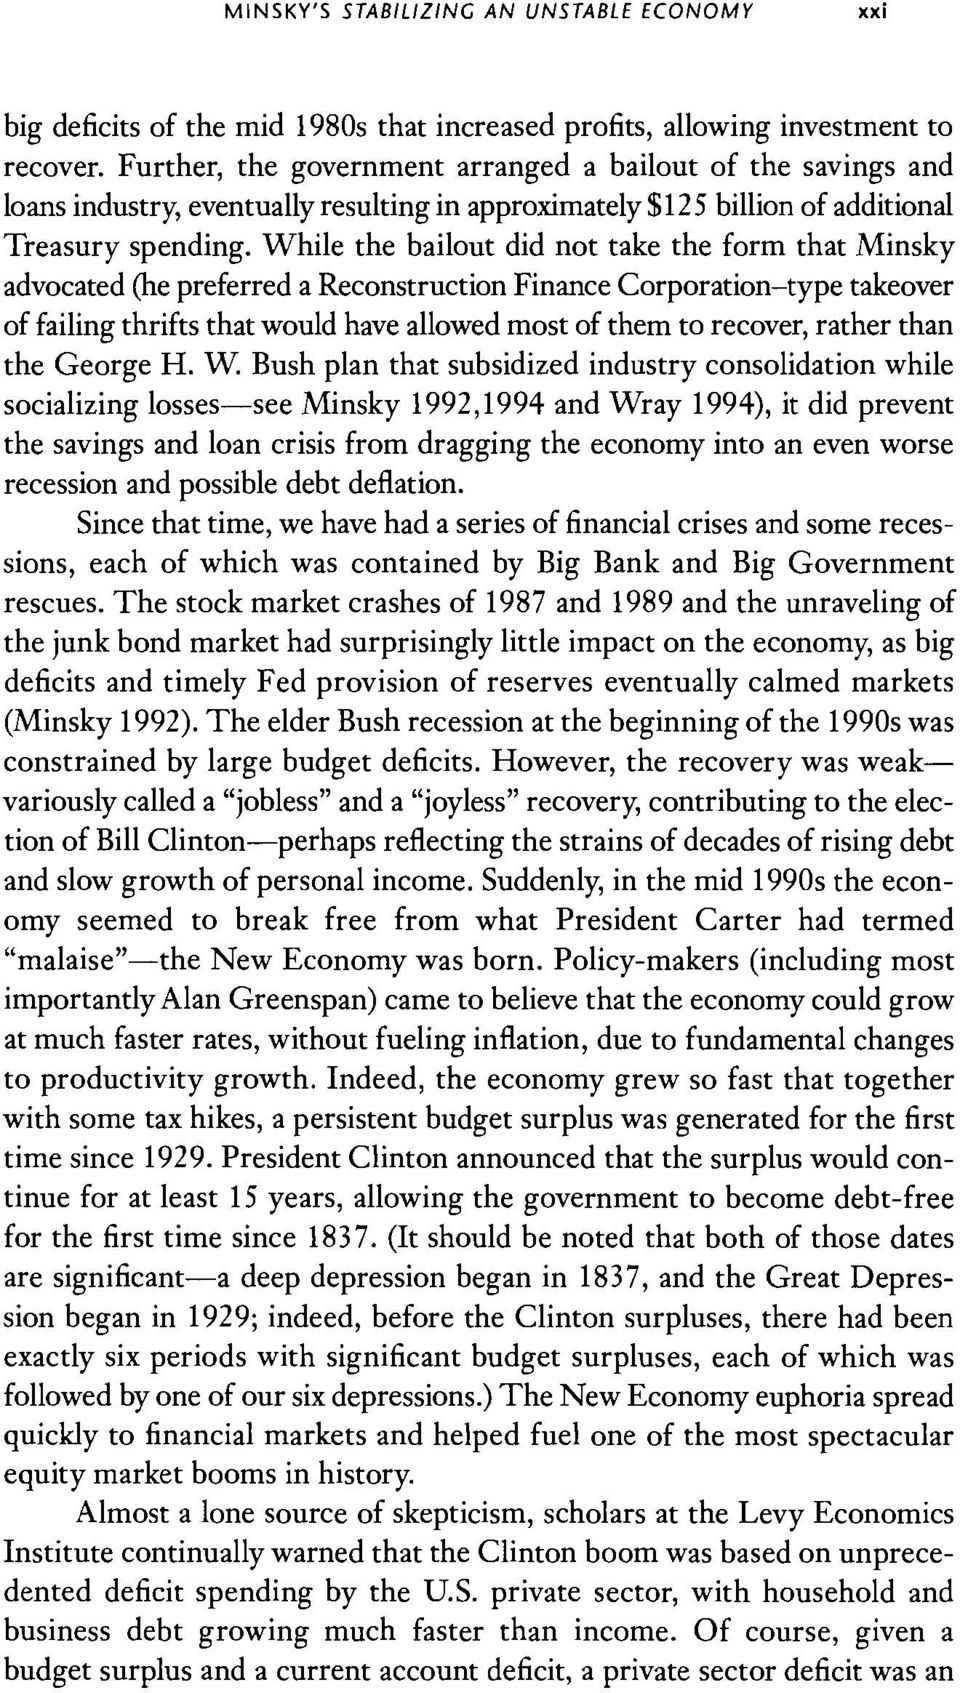 While the bailout did not take the form that Minsky advocated (he preferred a Reconstruction Finance Corporation-type takeover offailing thrifts that would have allowed most of them to recover,